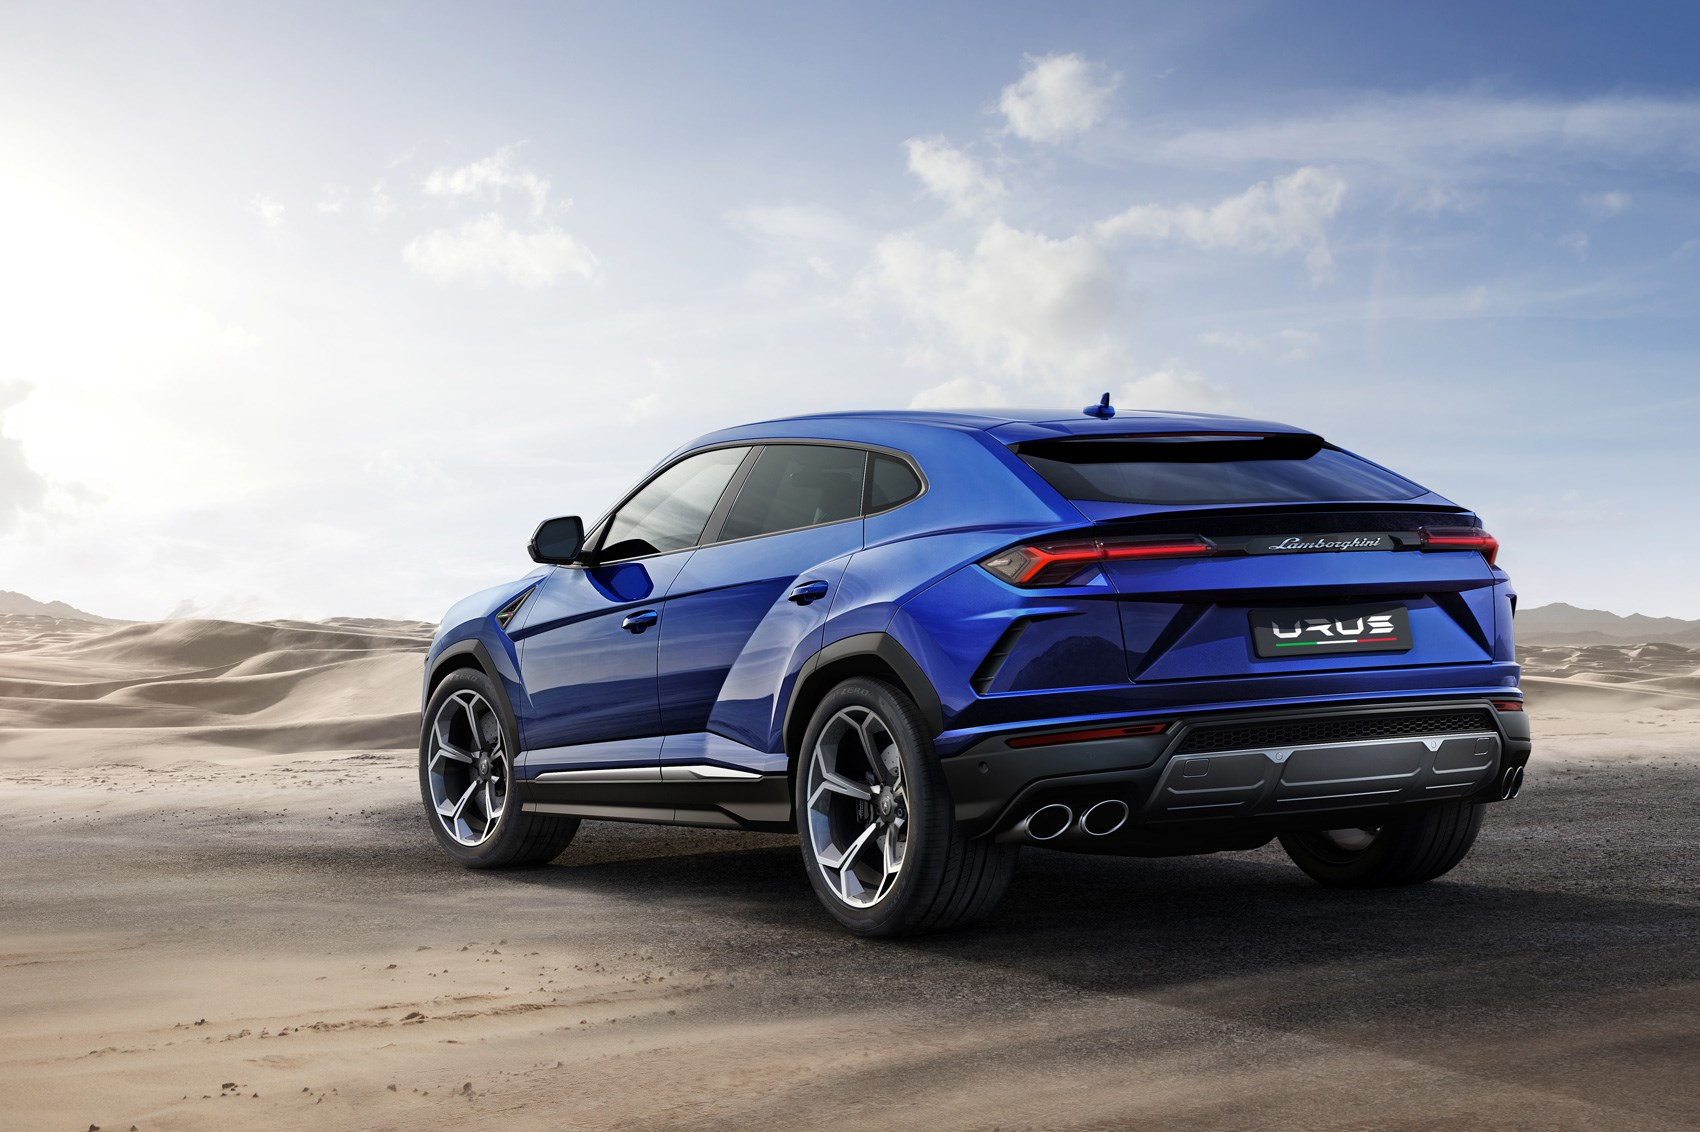 ... Lamborghini Urus (2018) SUV: Everything You Need To Know ...